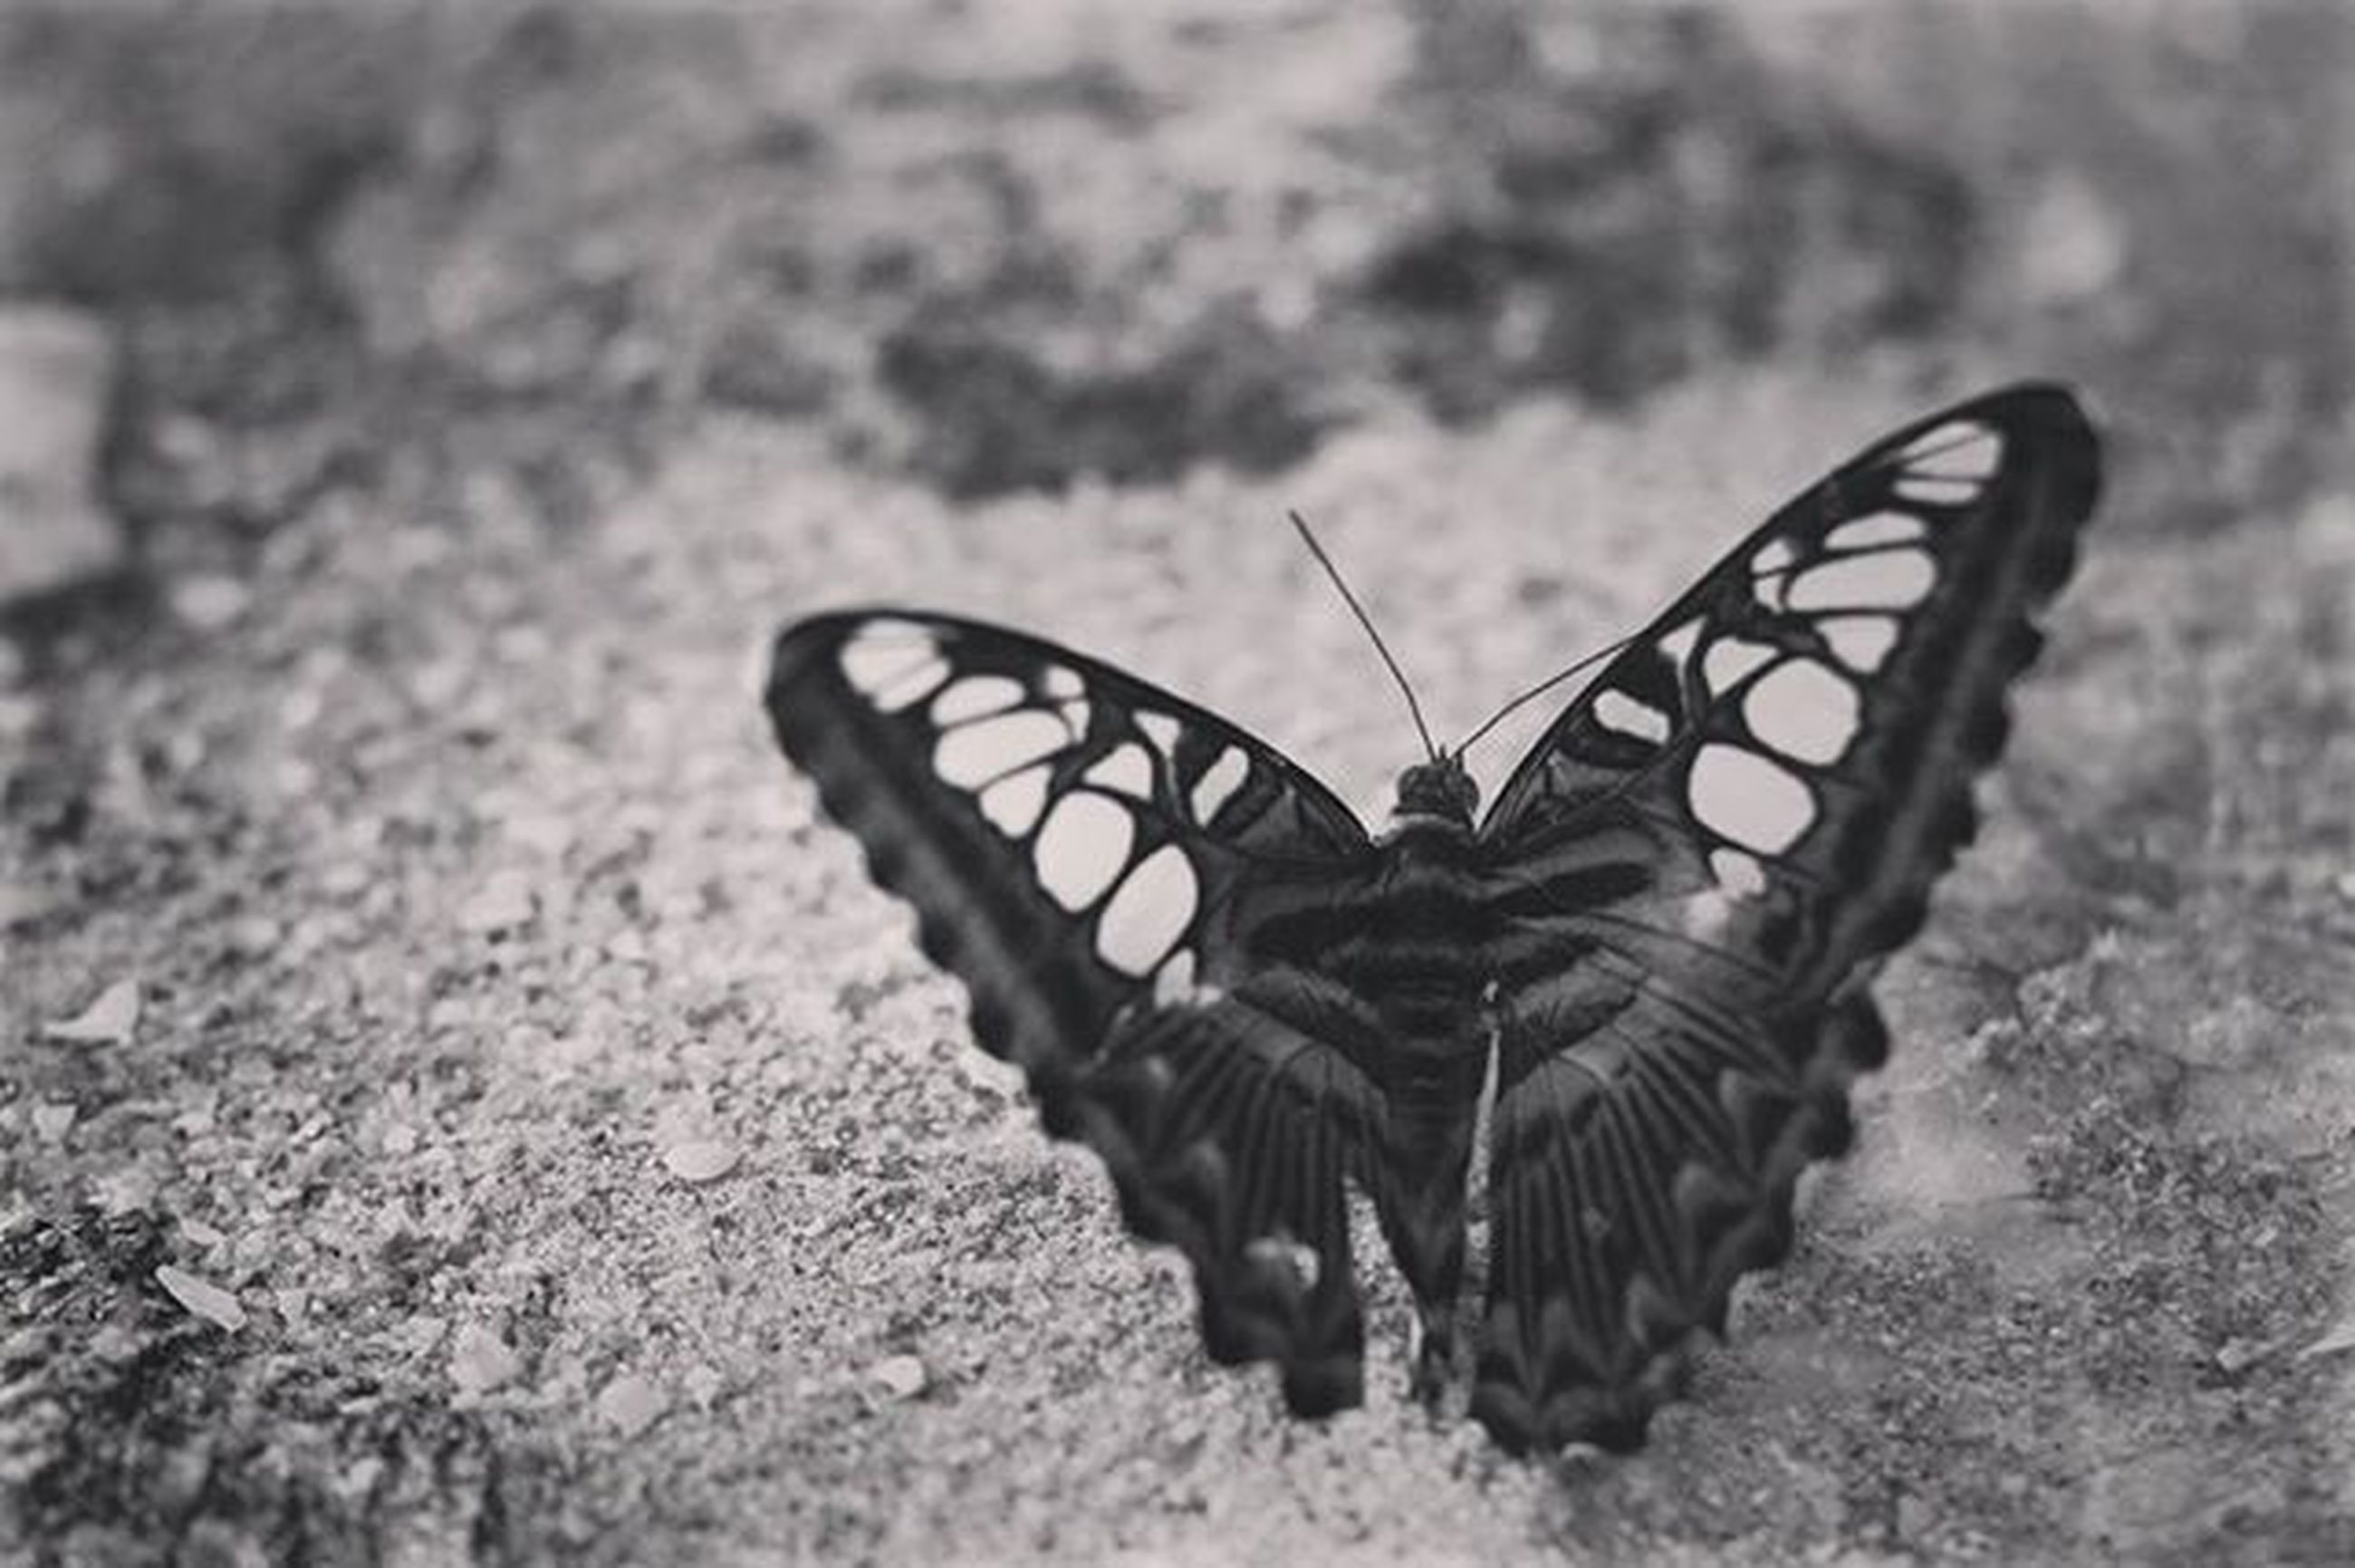 animal themes, one animal, animals in the wild, wildlife, close-up, focus on foreground, insect, animal markings, outdoors, street, selective focus, day, no people, nature, butterfly - insect, high angle view, shadow, sunlight, natural pattern, ground